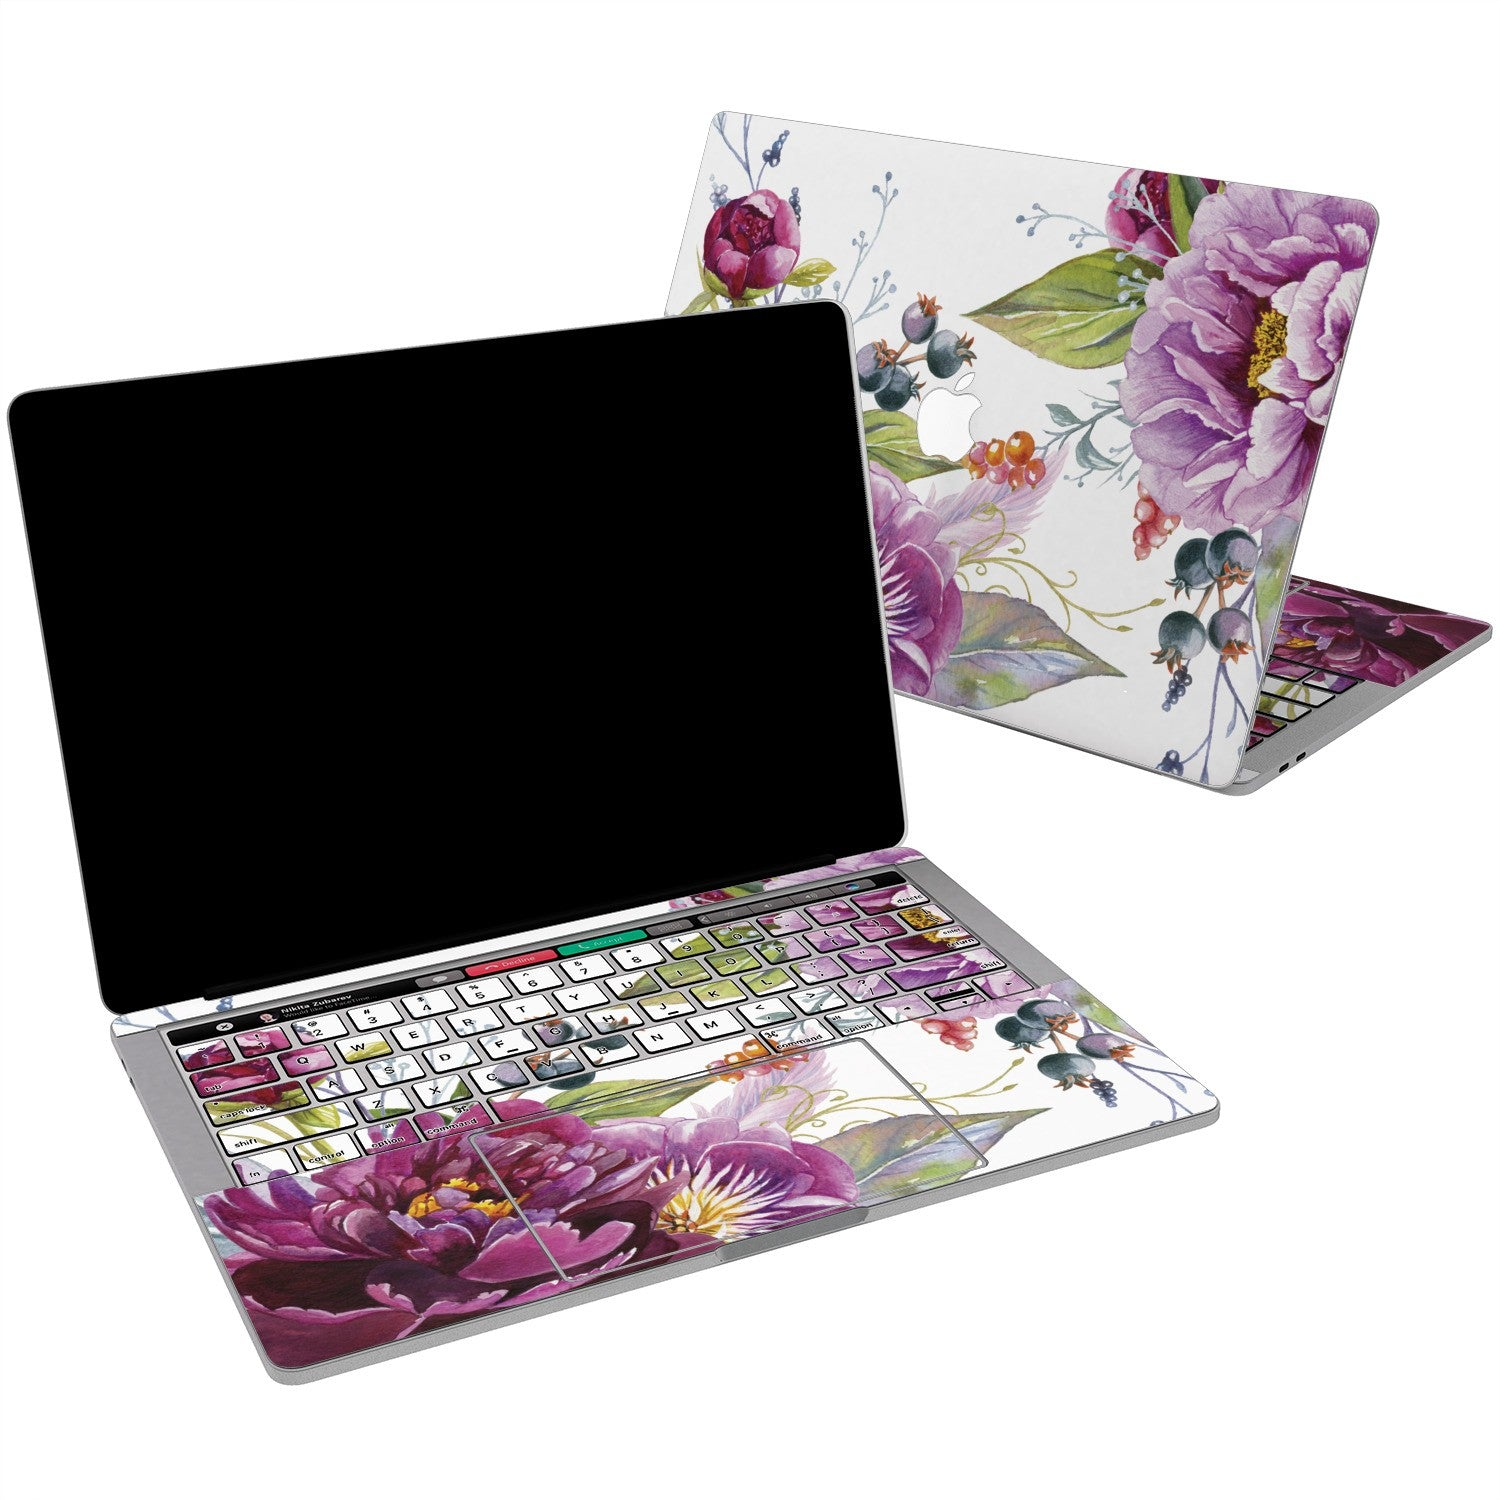 Lex Altern Vinyl MacBook Skin Purple Floral for your Laptop Apple Macbook.